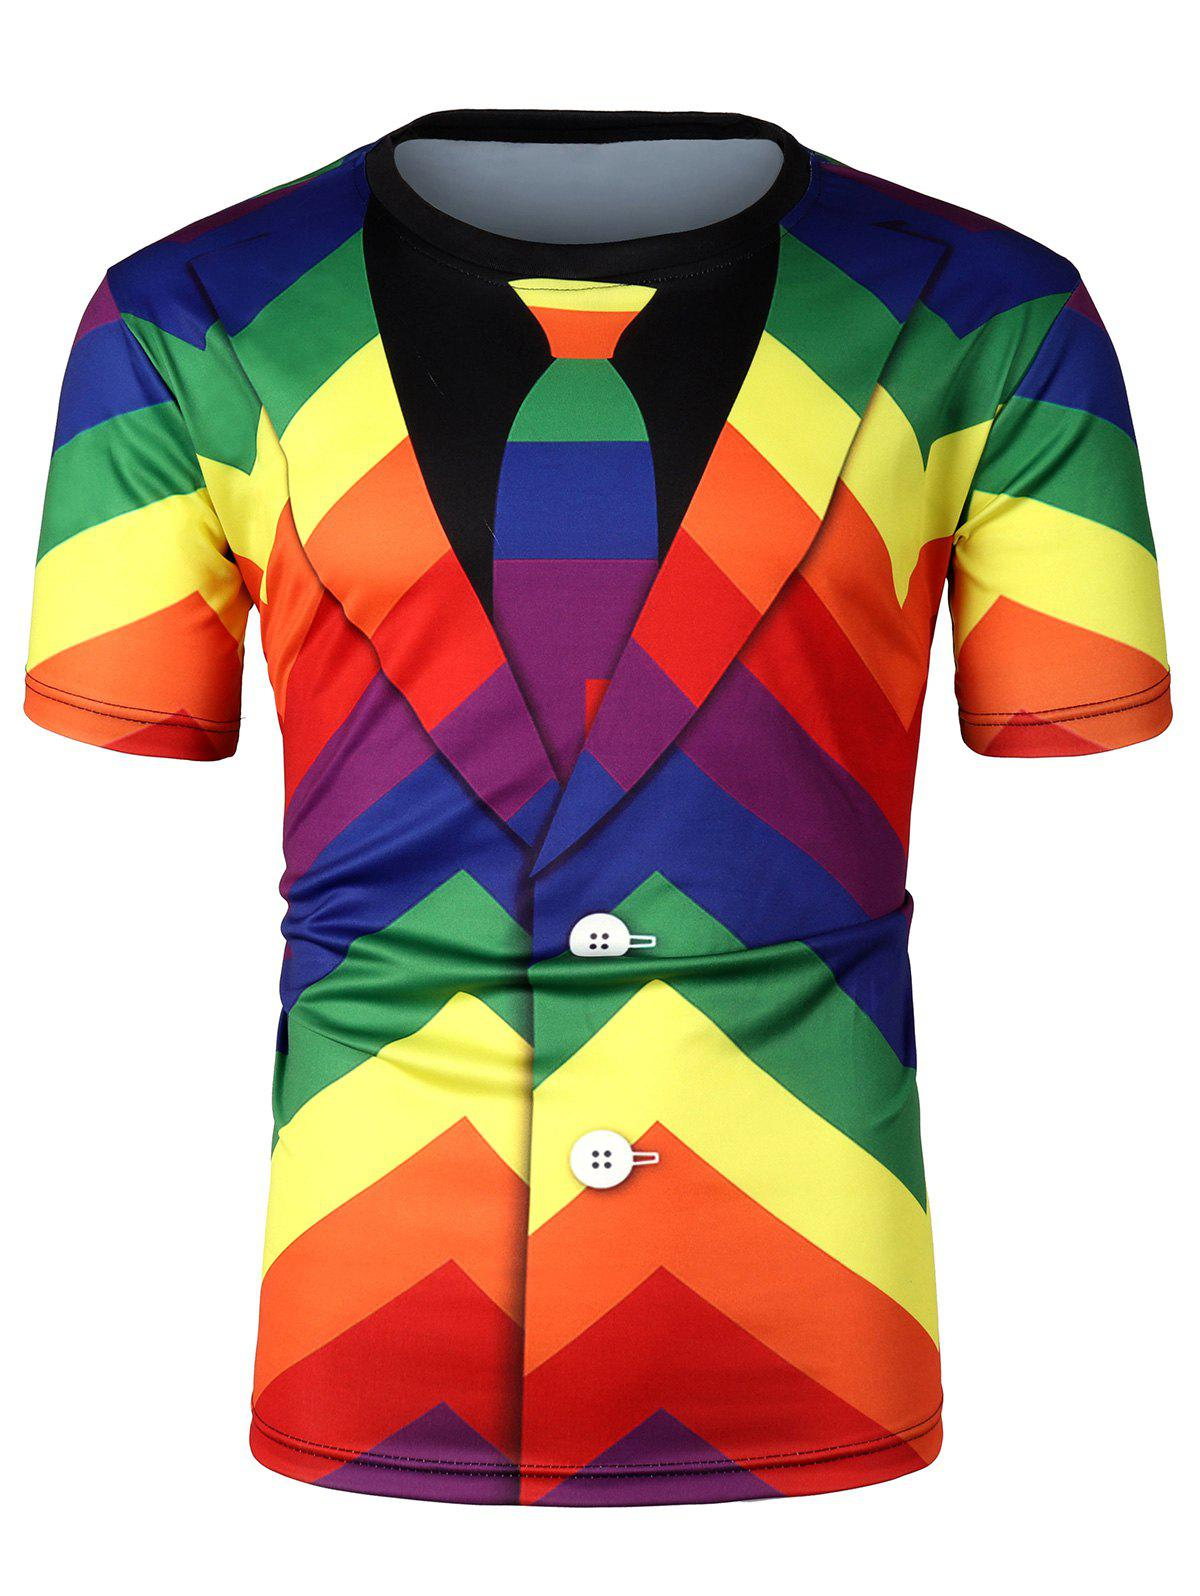 571ae80c7 66% OFF] Colorful Striped Pattern Short Sleeves T-shirt | Rosegal